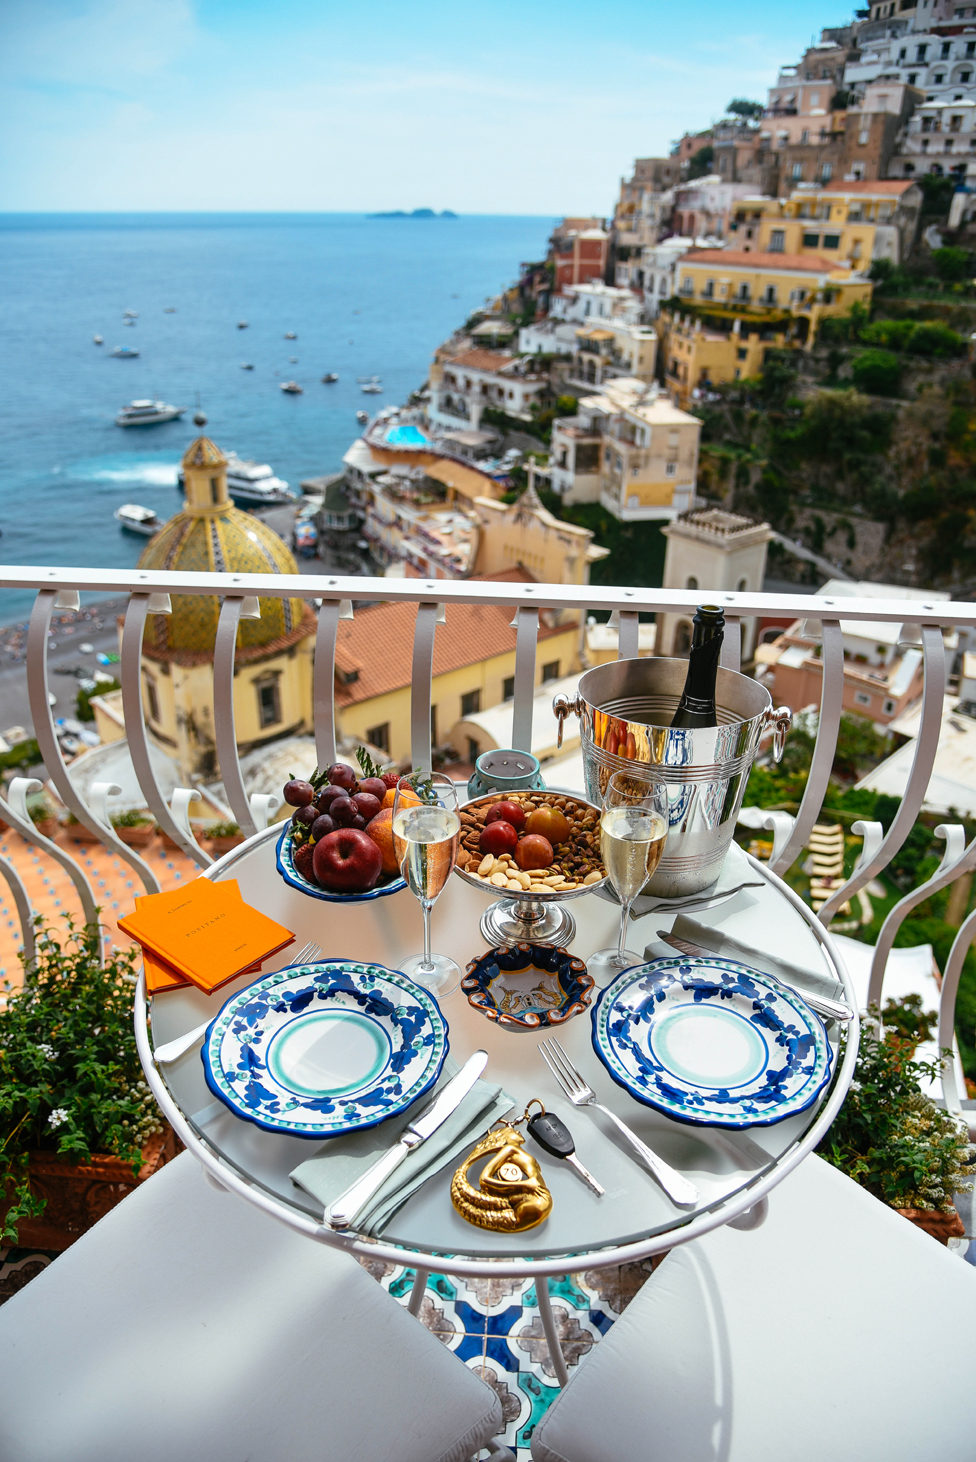 Laura Comolli, colazione in camera all'Hotel Le Sirenuse, Positano